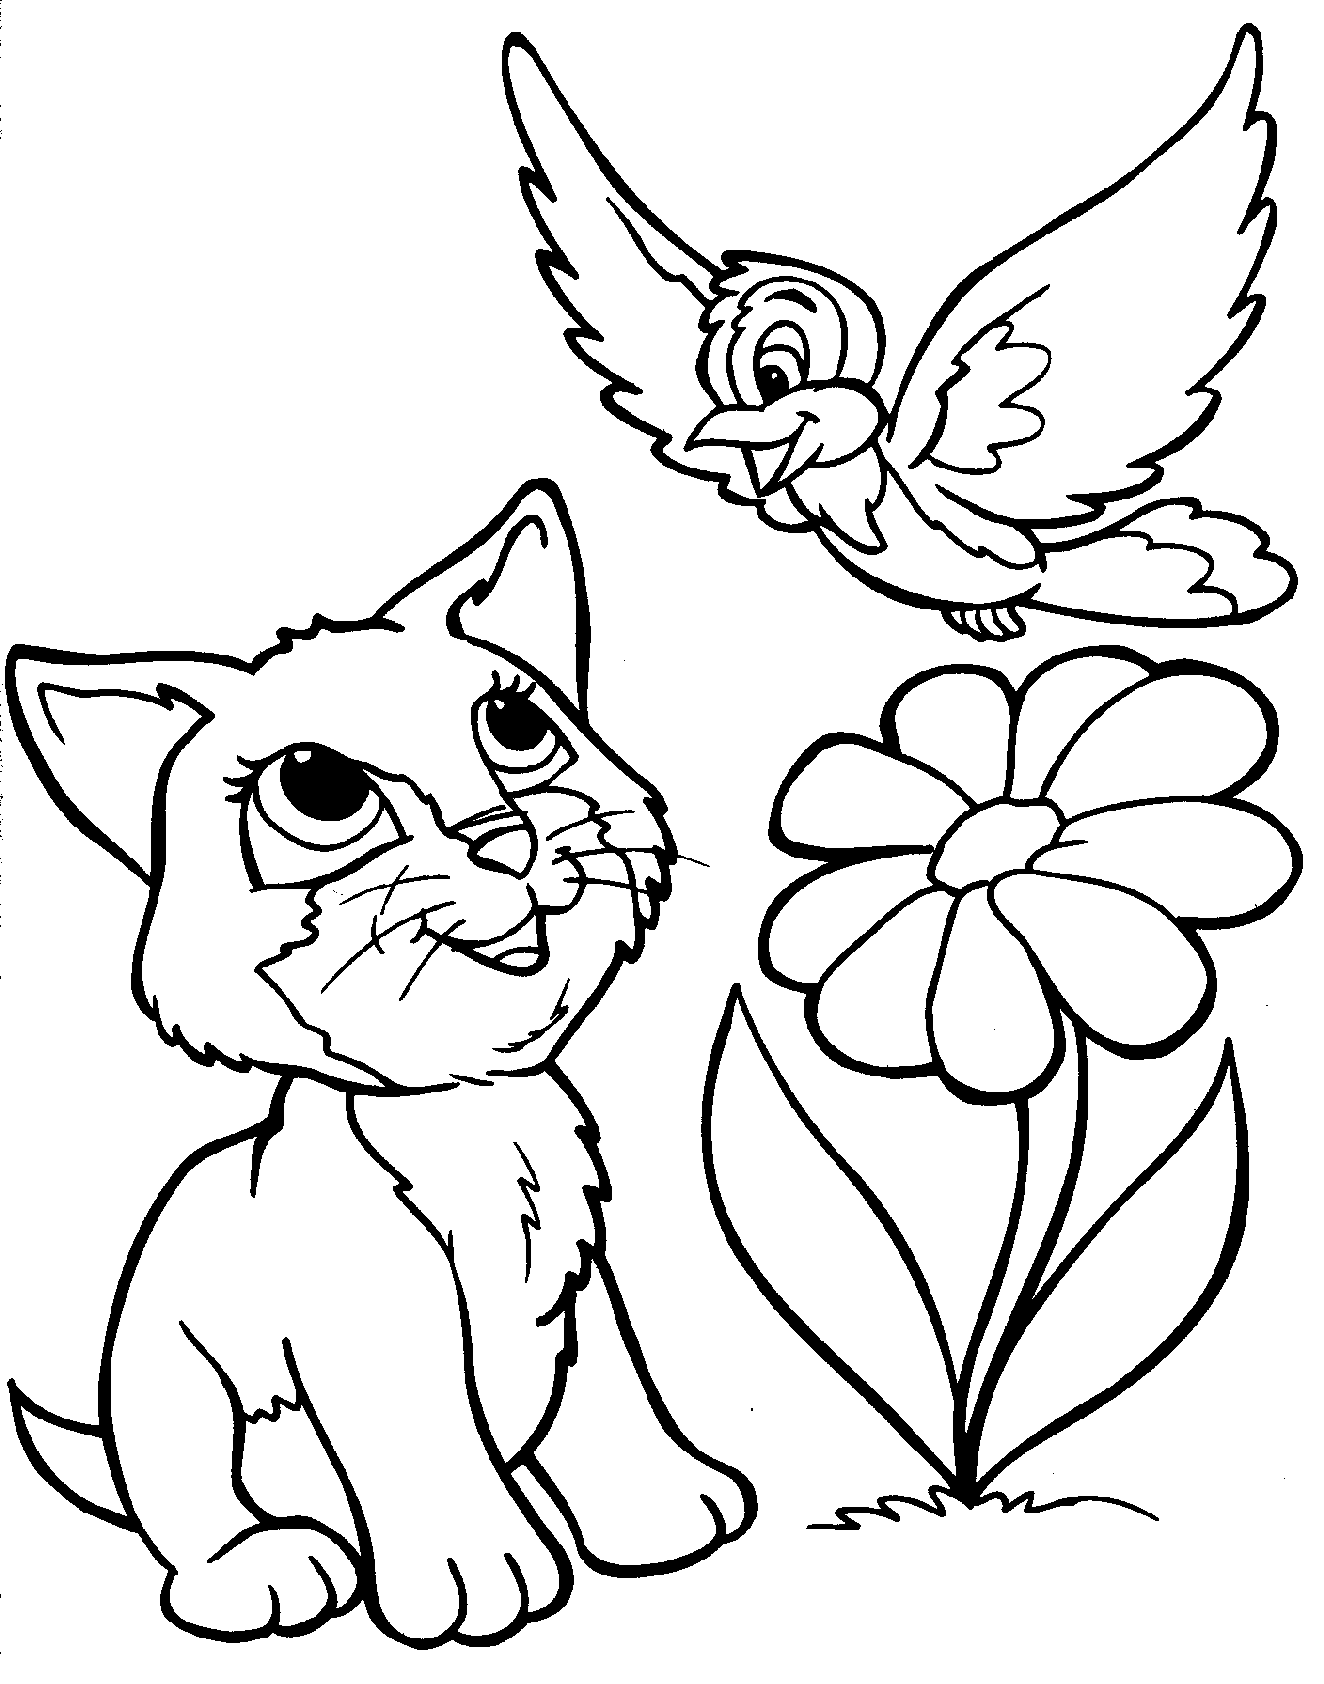 Kitten Playing With Bird Zoo Animal Coloring Pages Cat Coloring Page Animal Coloring Pages